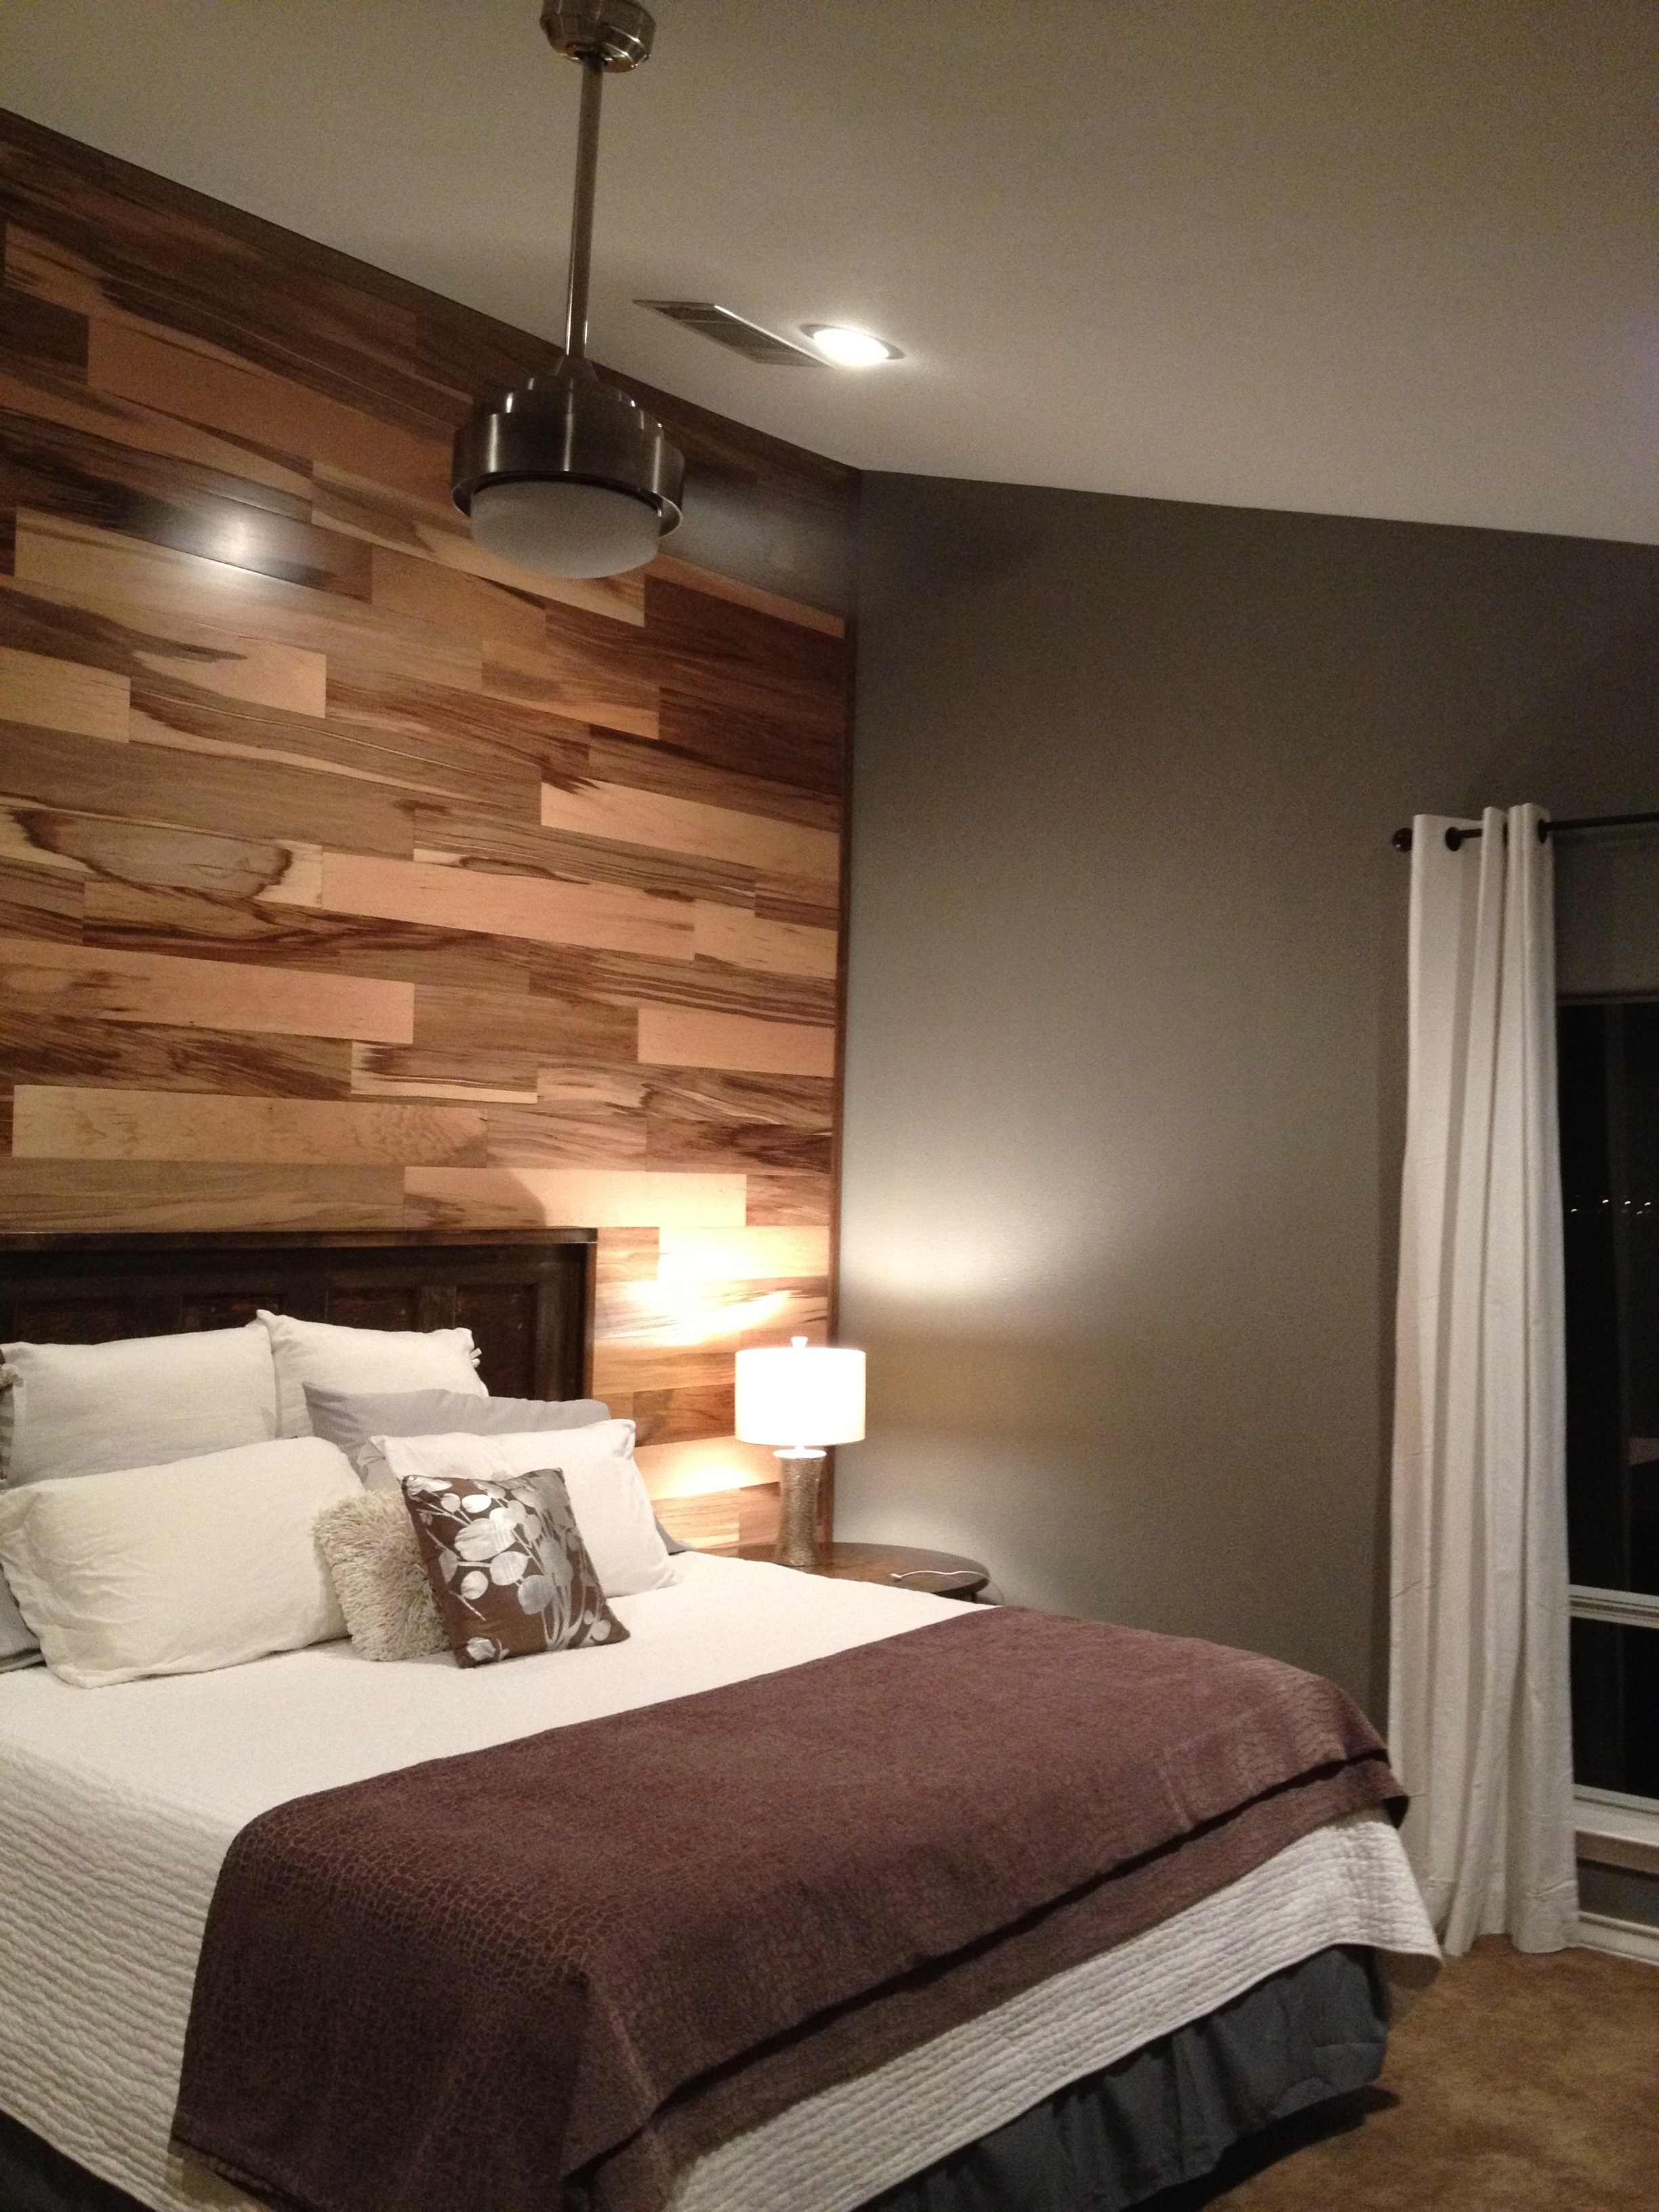 Love The Floor On The Wall! | Decorating | Pinterest | Walls with Most Popular Wall Accents With Laminate Flooring